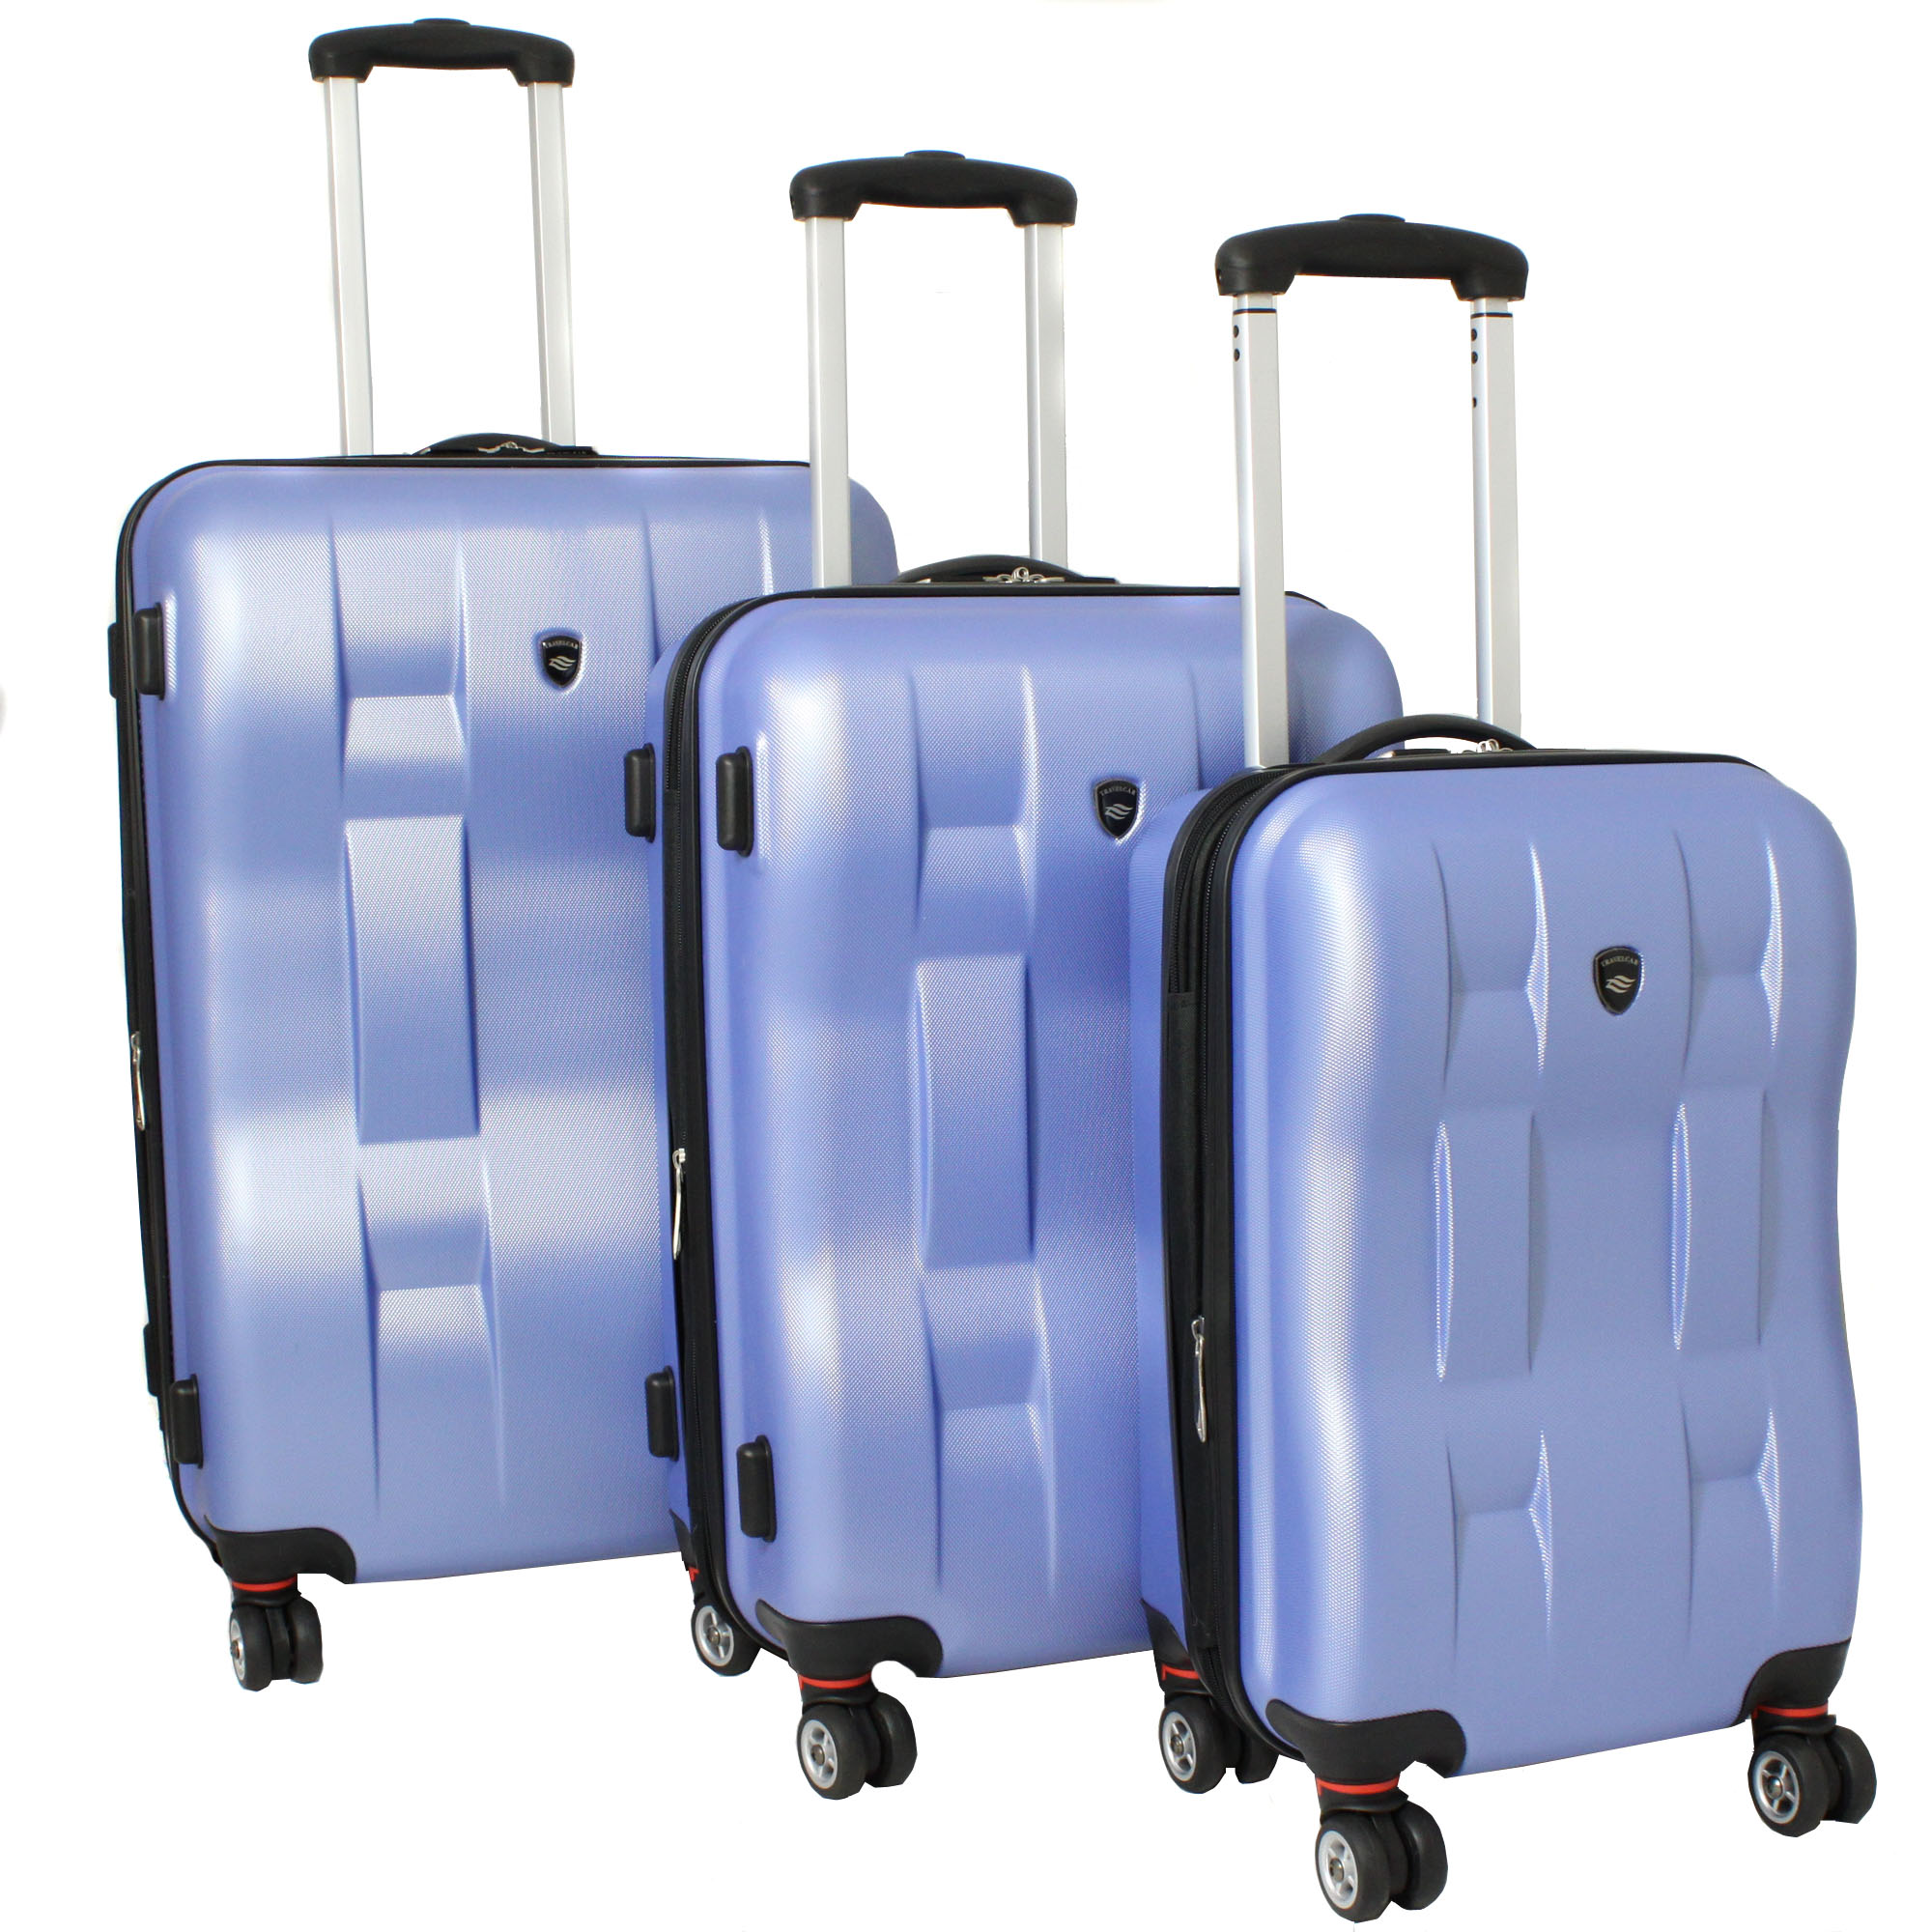 American Travelcar 3-piece Super Lightweight Expandable Hardside Blue Spinner Luggage Set with TSA Lock